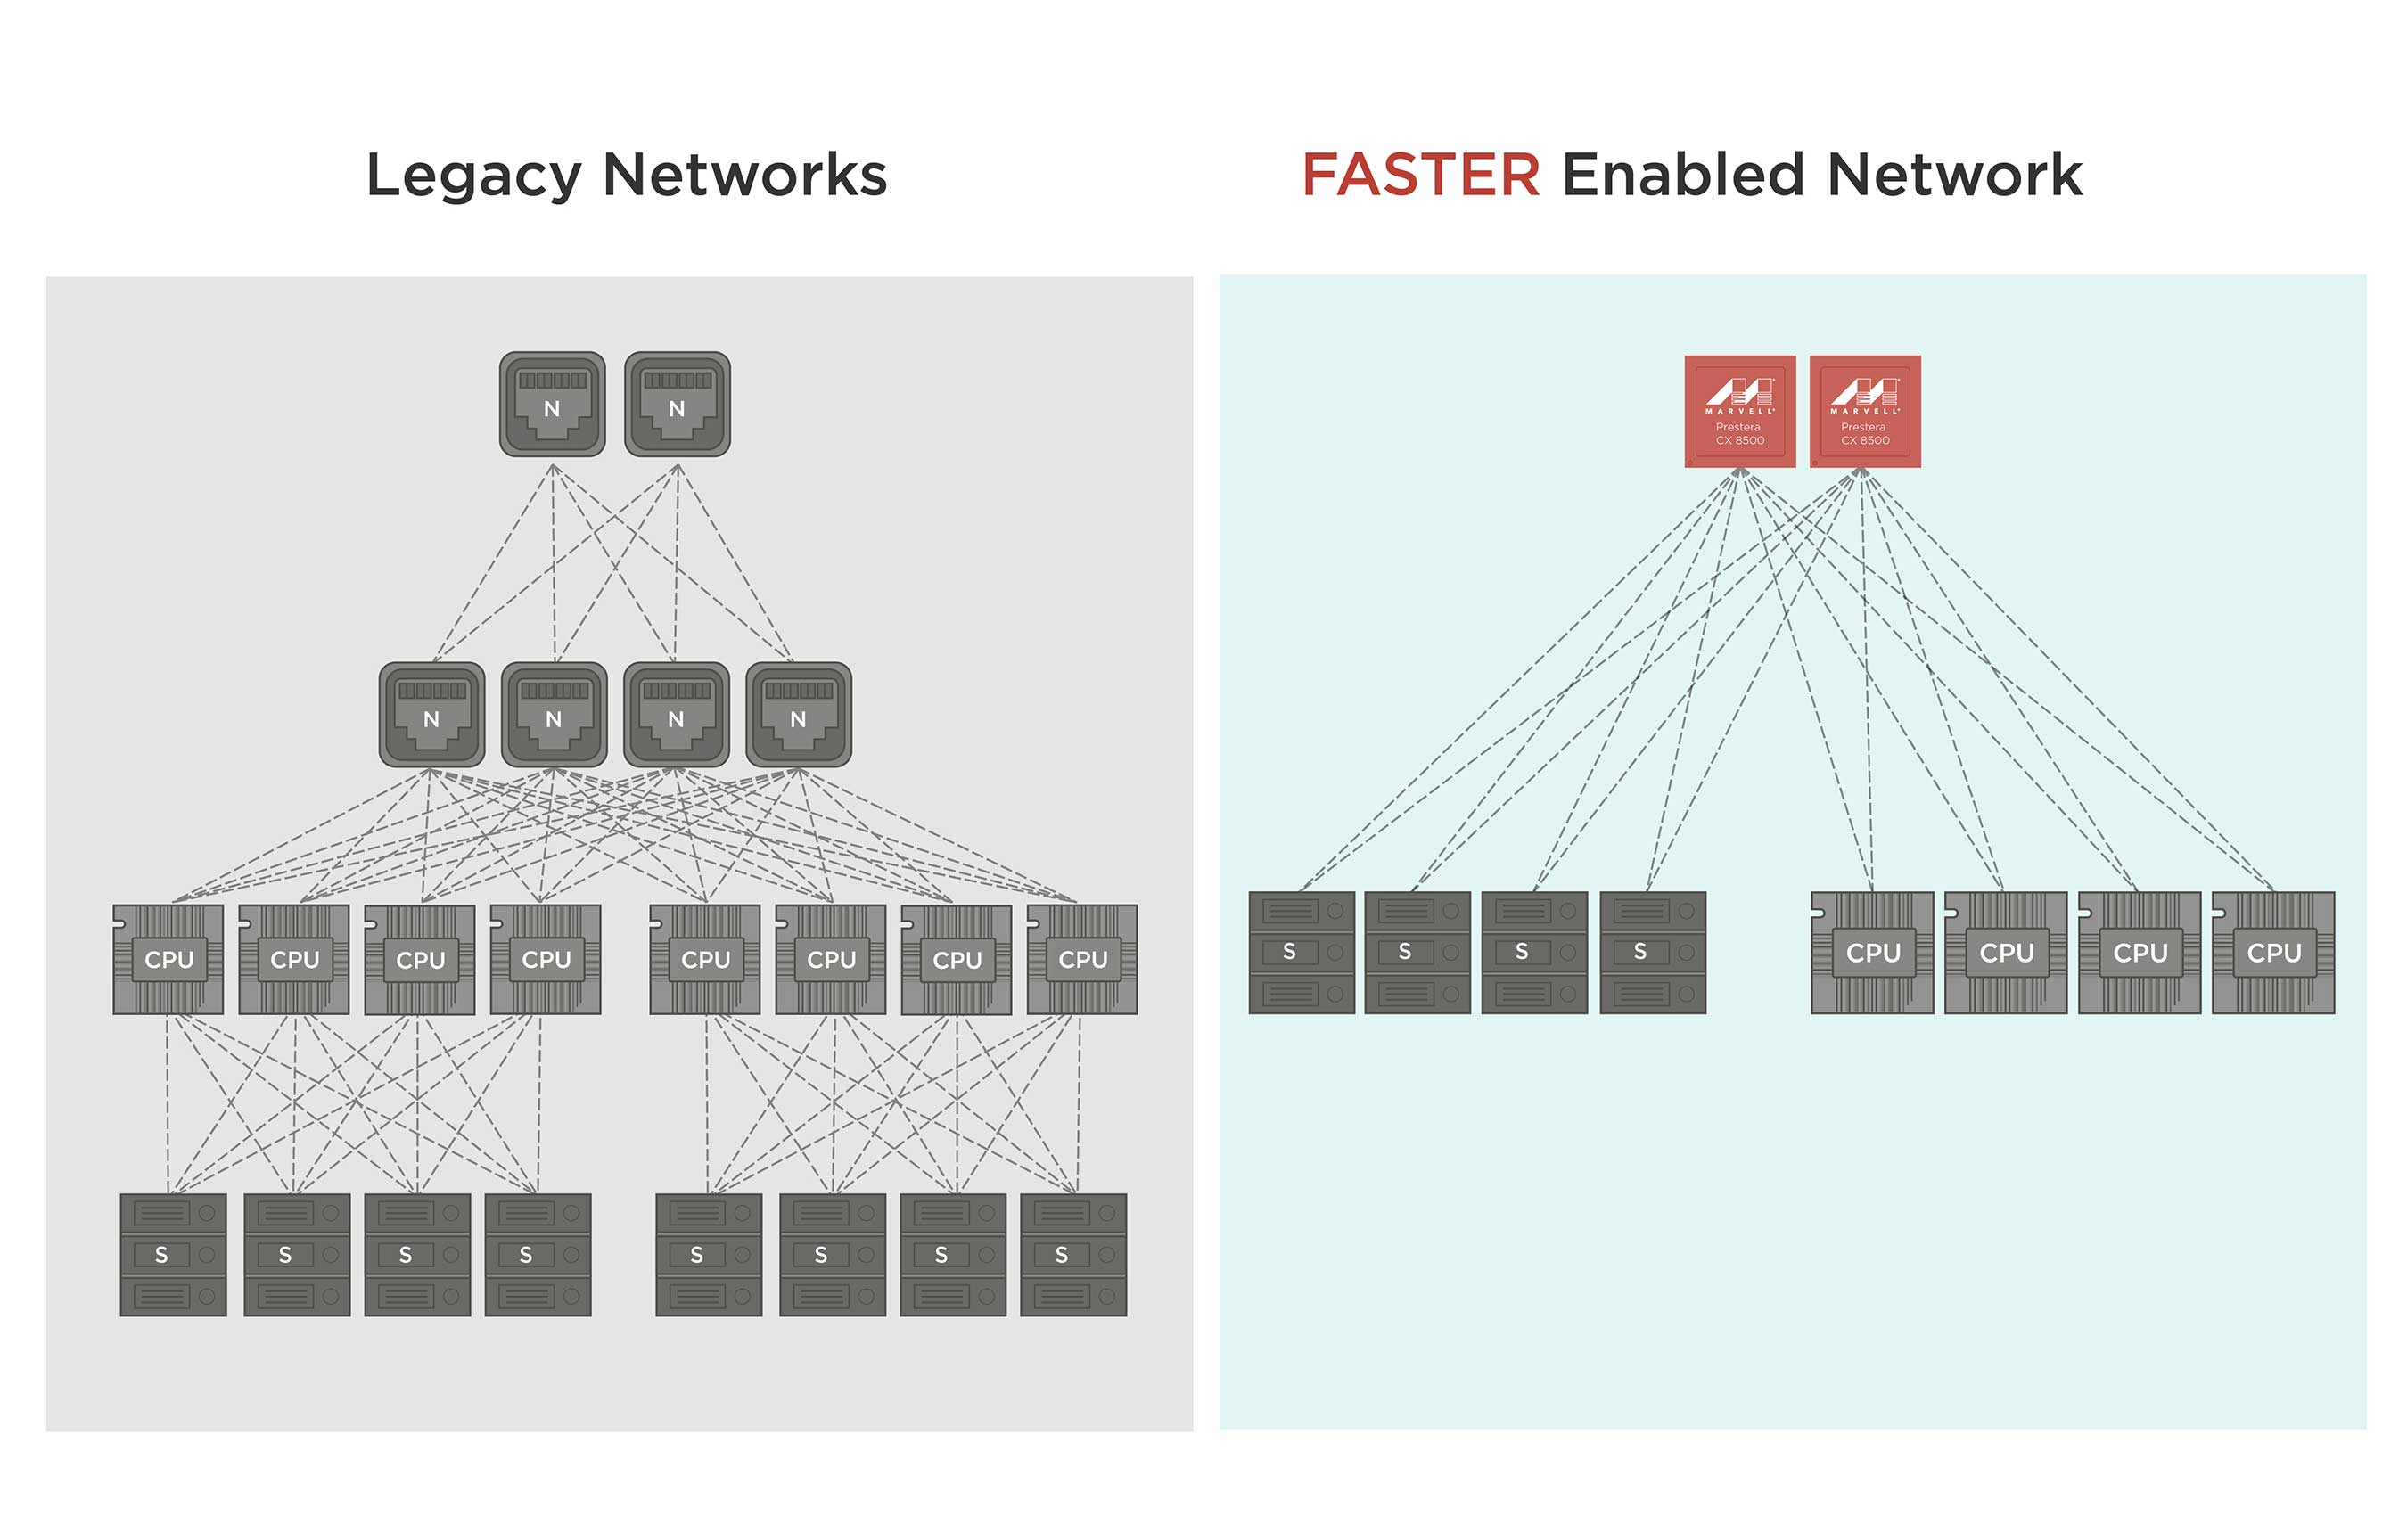 By enabling virtualization for scalability, FASTER technology in the Marvell Prestera CX 8500 family results in a reduction in the number of network layers and simplifies complexity, allowing edge data center networks to be collapsed into a single layer, ultimately lowering power, space and latency. Most importantly, FASTER can reduce overall network costs by more than 50%.